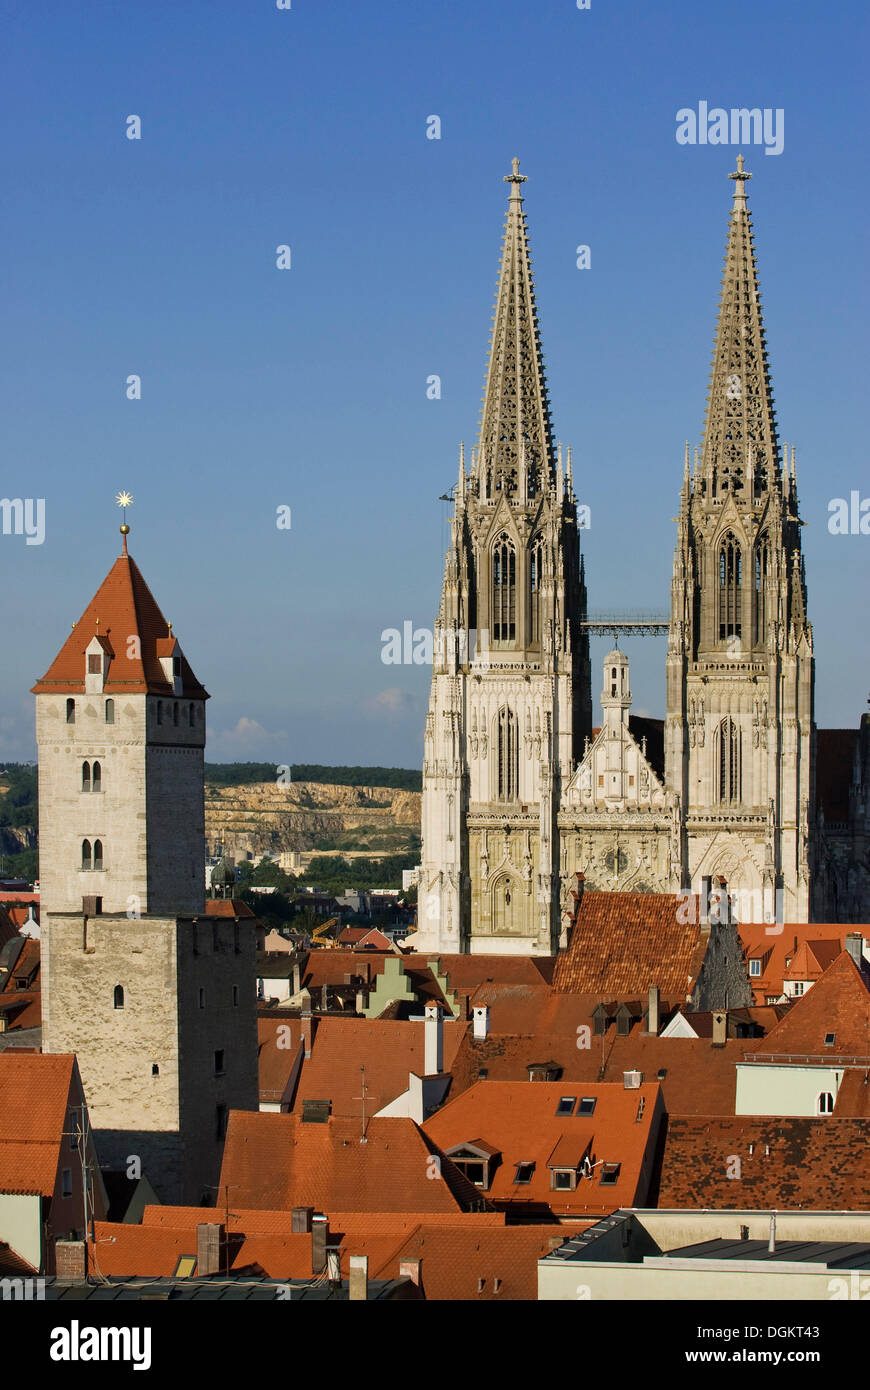 View over the rooftops of the old town to the Regensburg Cathedral of St. Peter, on the left the Goldener Turm tower, - Stock Image